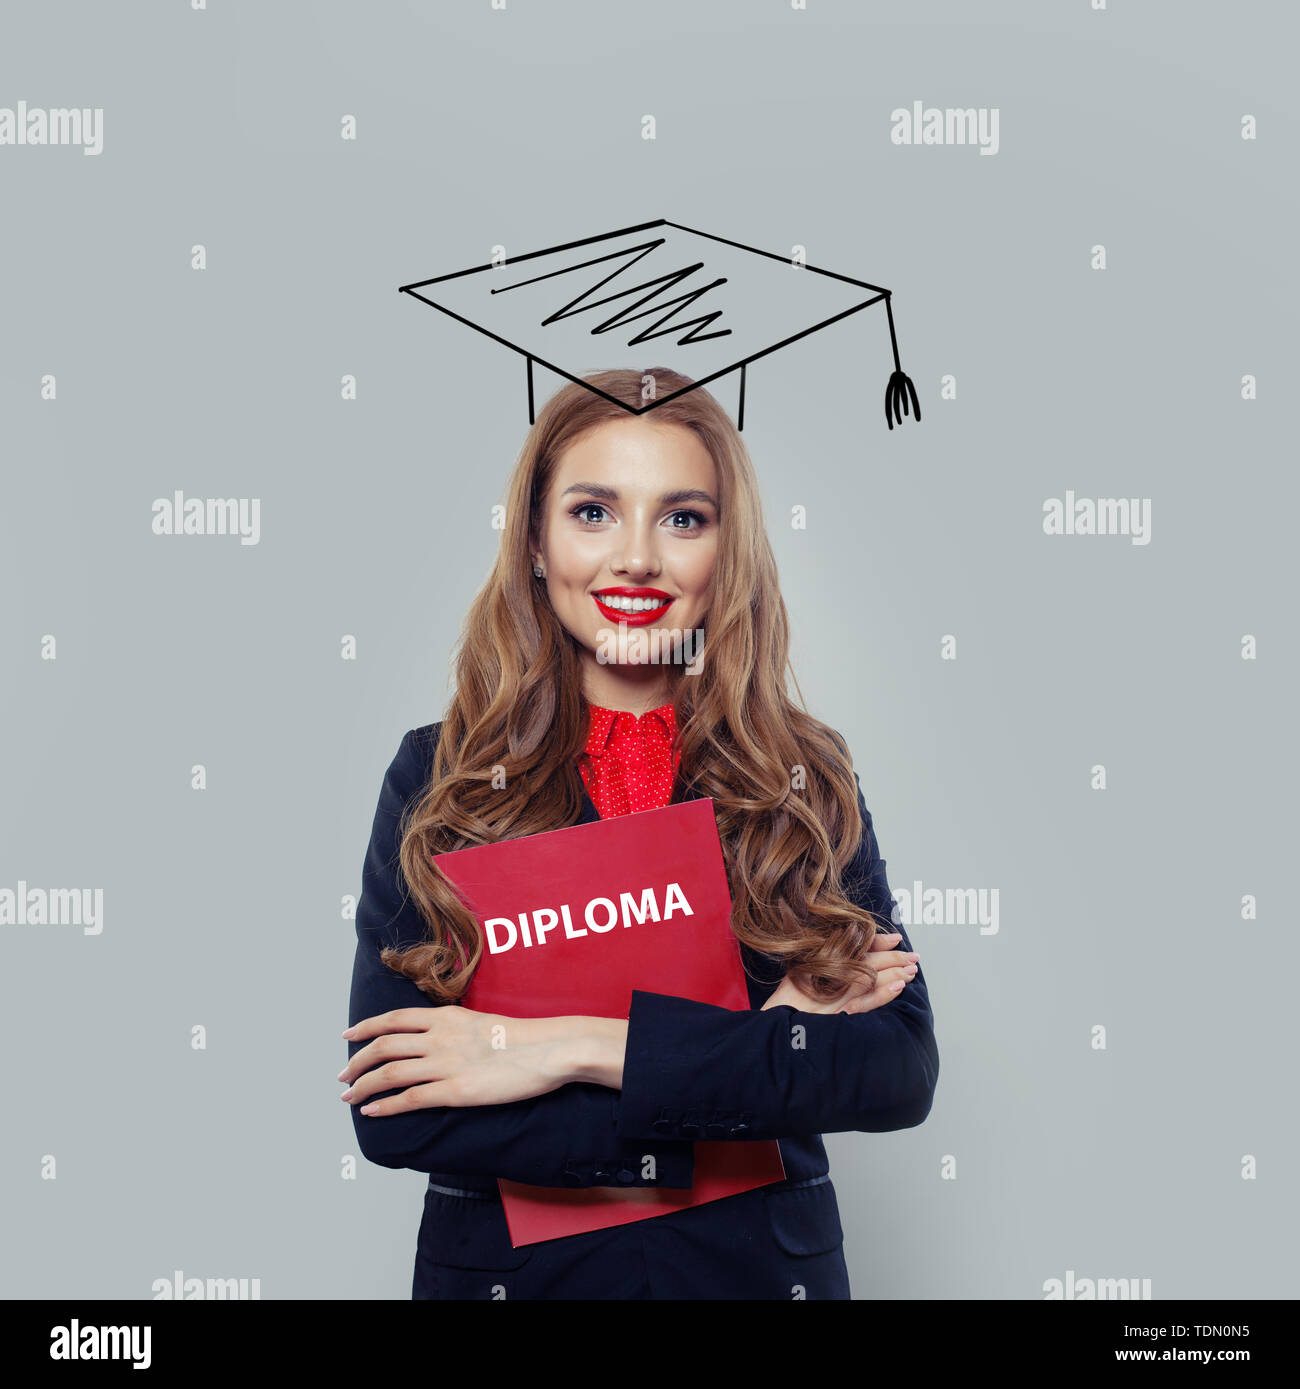 Happy young woman student with diploma on white background - Stock Image